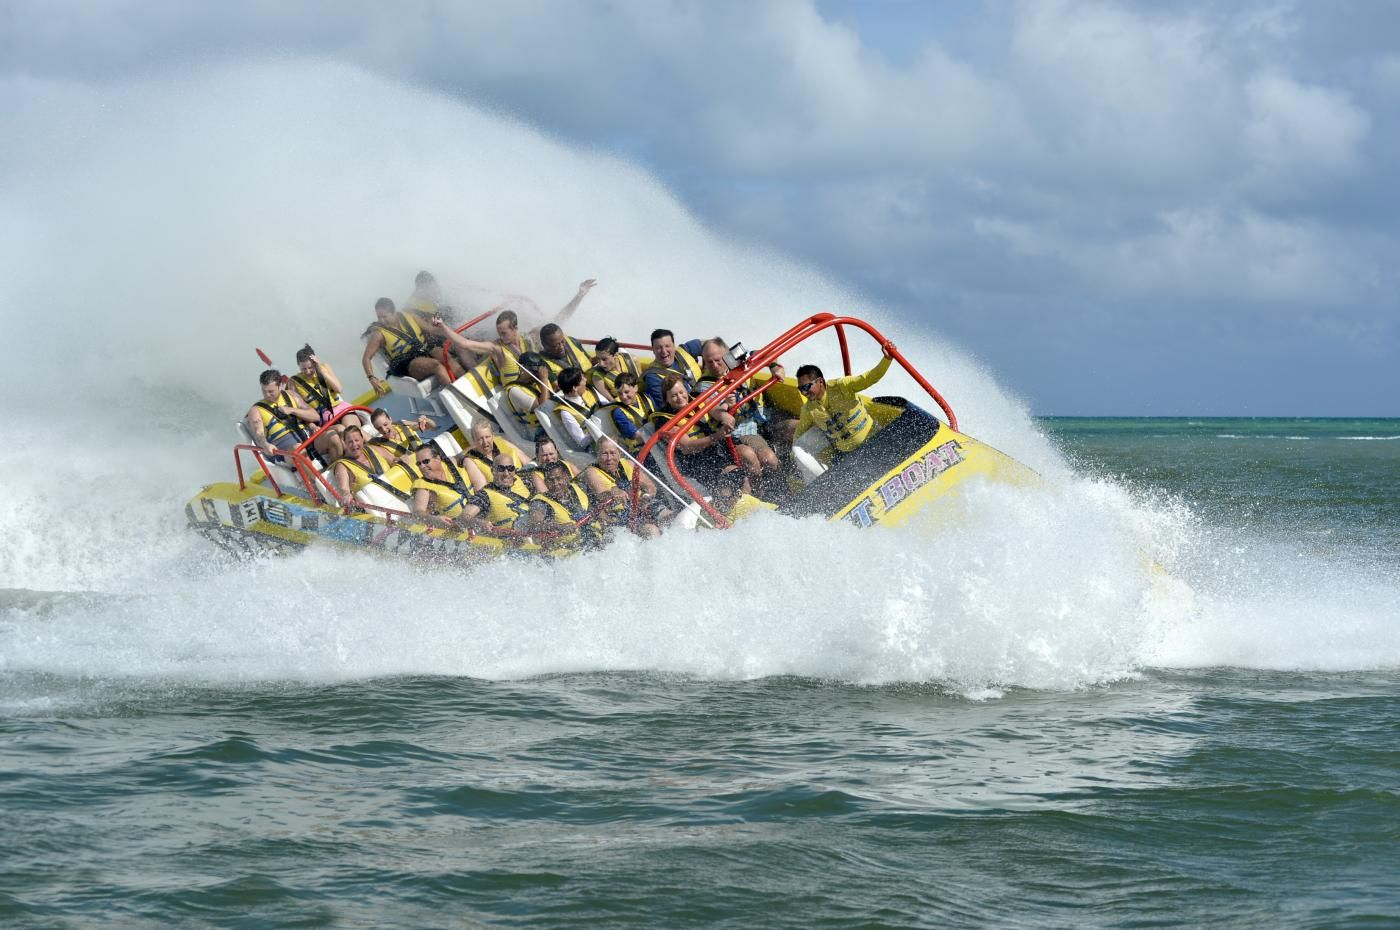 Feel the adrenaline rush through your body in this extreme boat ride to Isla Pasion!